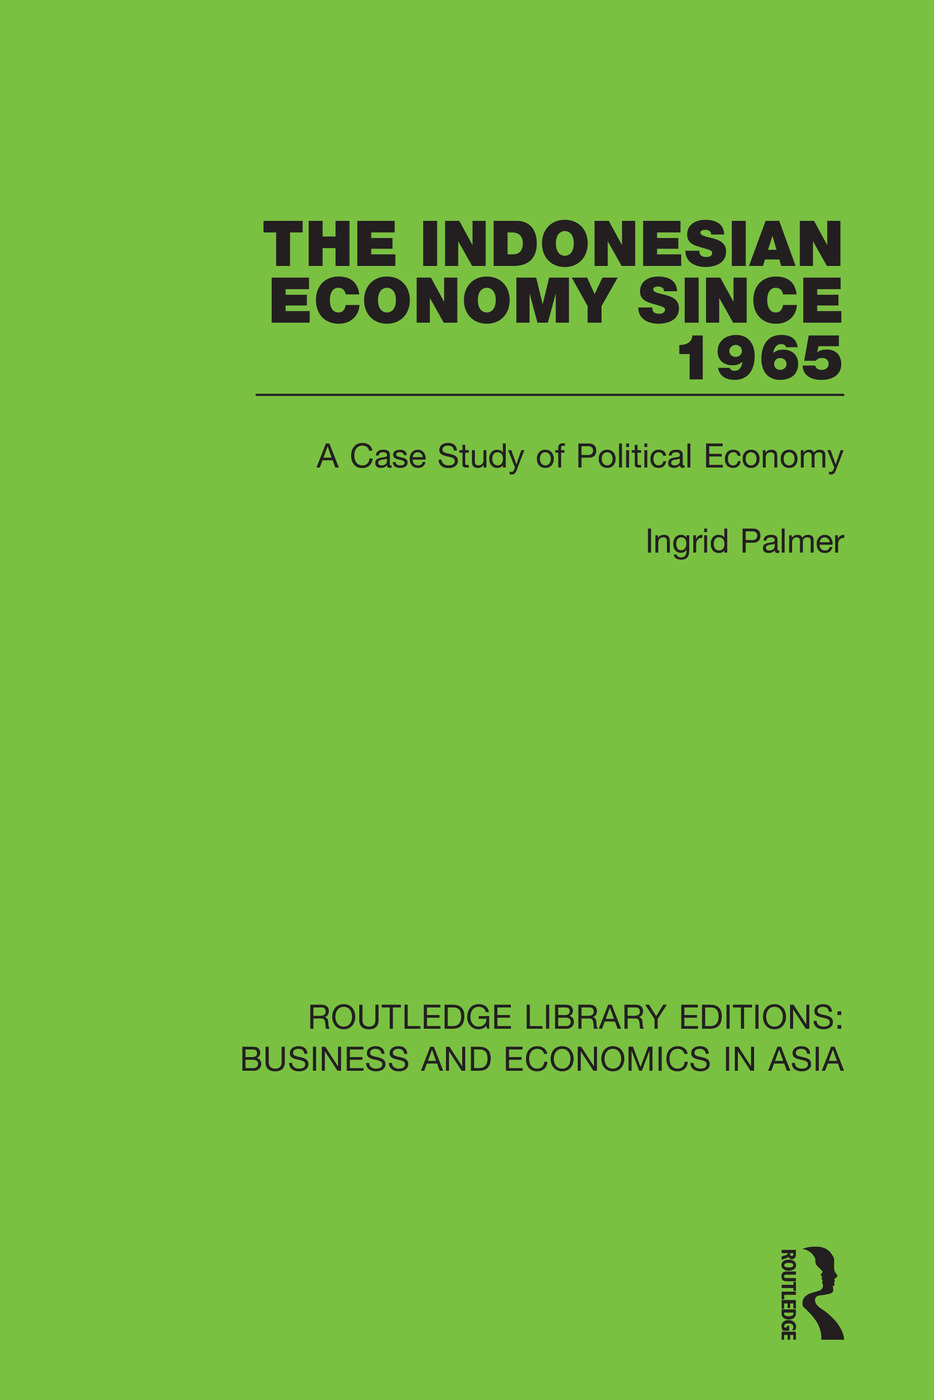 The Indonesian Economy Since 1965: A Case Study of Political Economy book cover